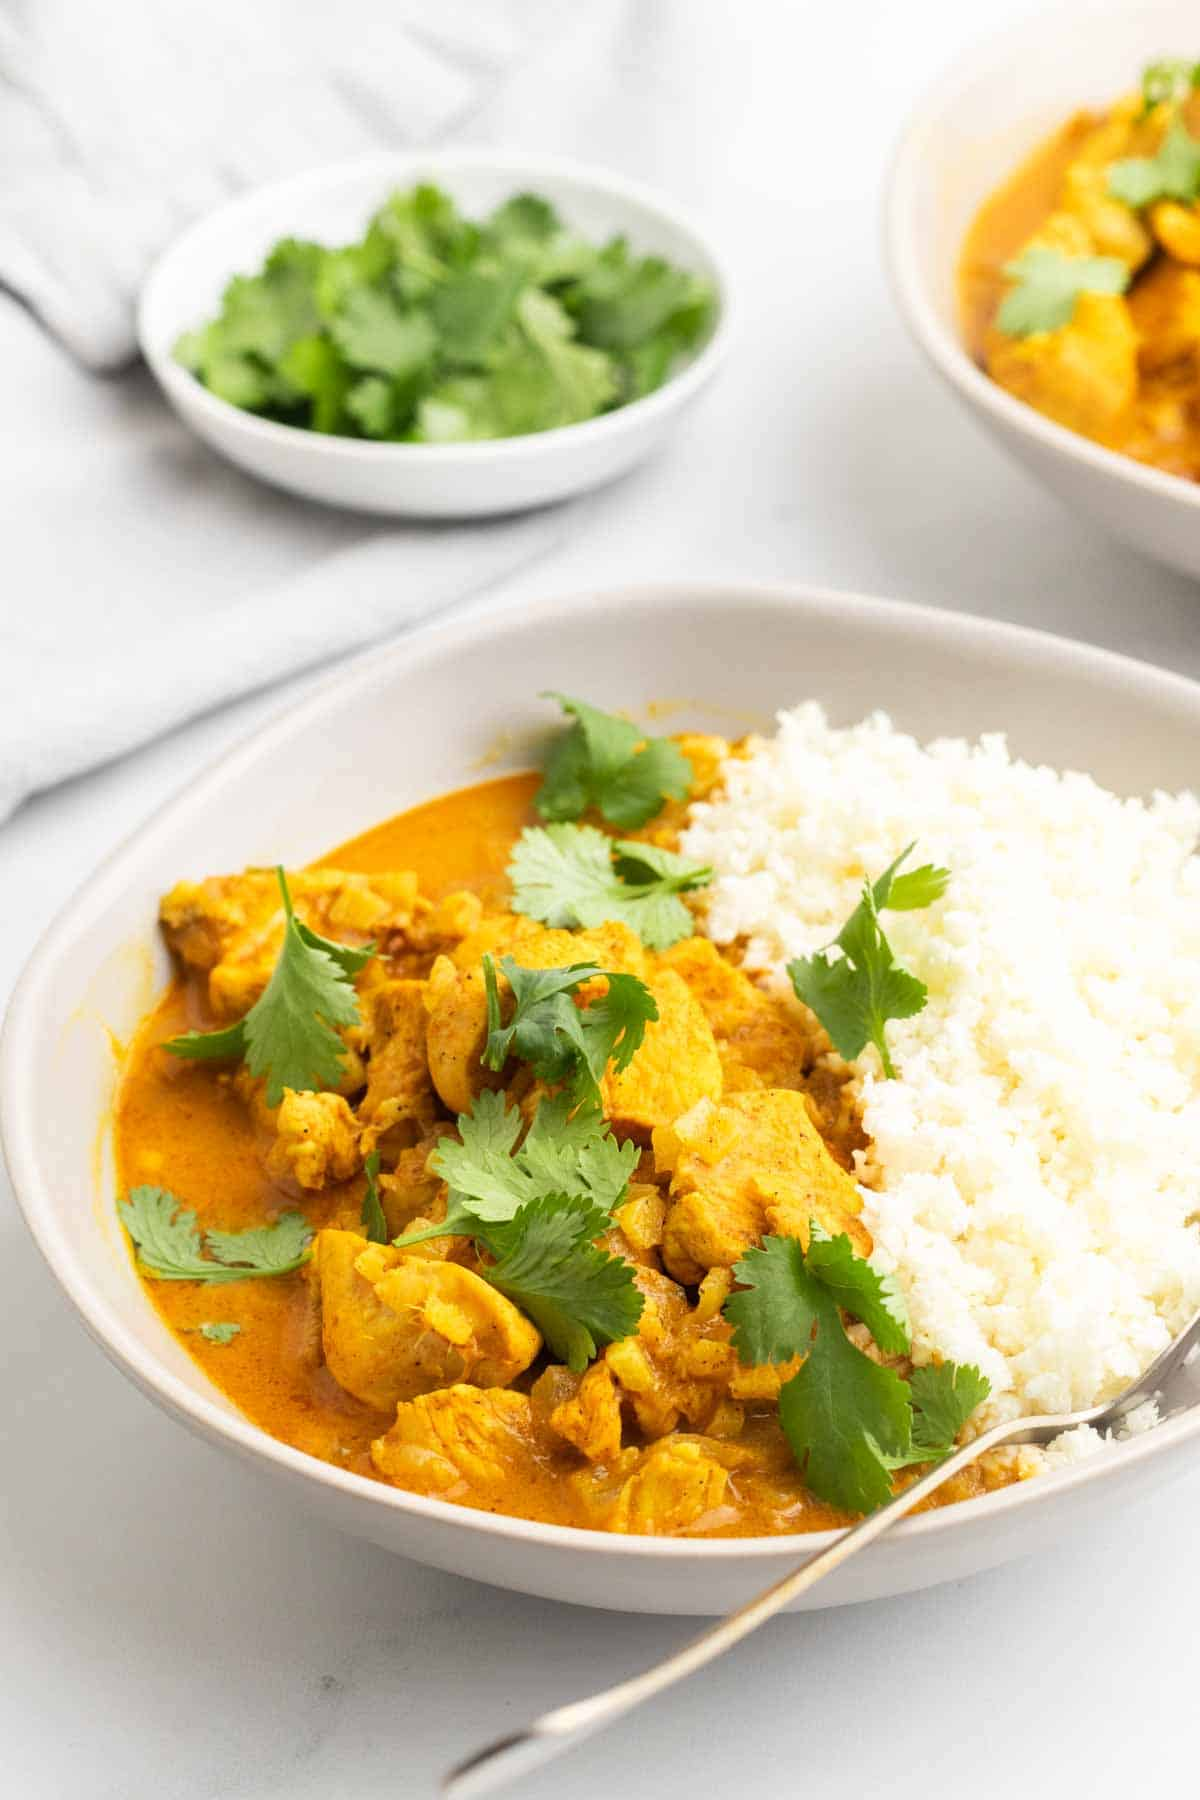 Closeup of chicken curry in a white bowl, garnished with cilantro and served with cauliflower rice